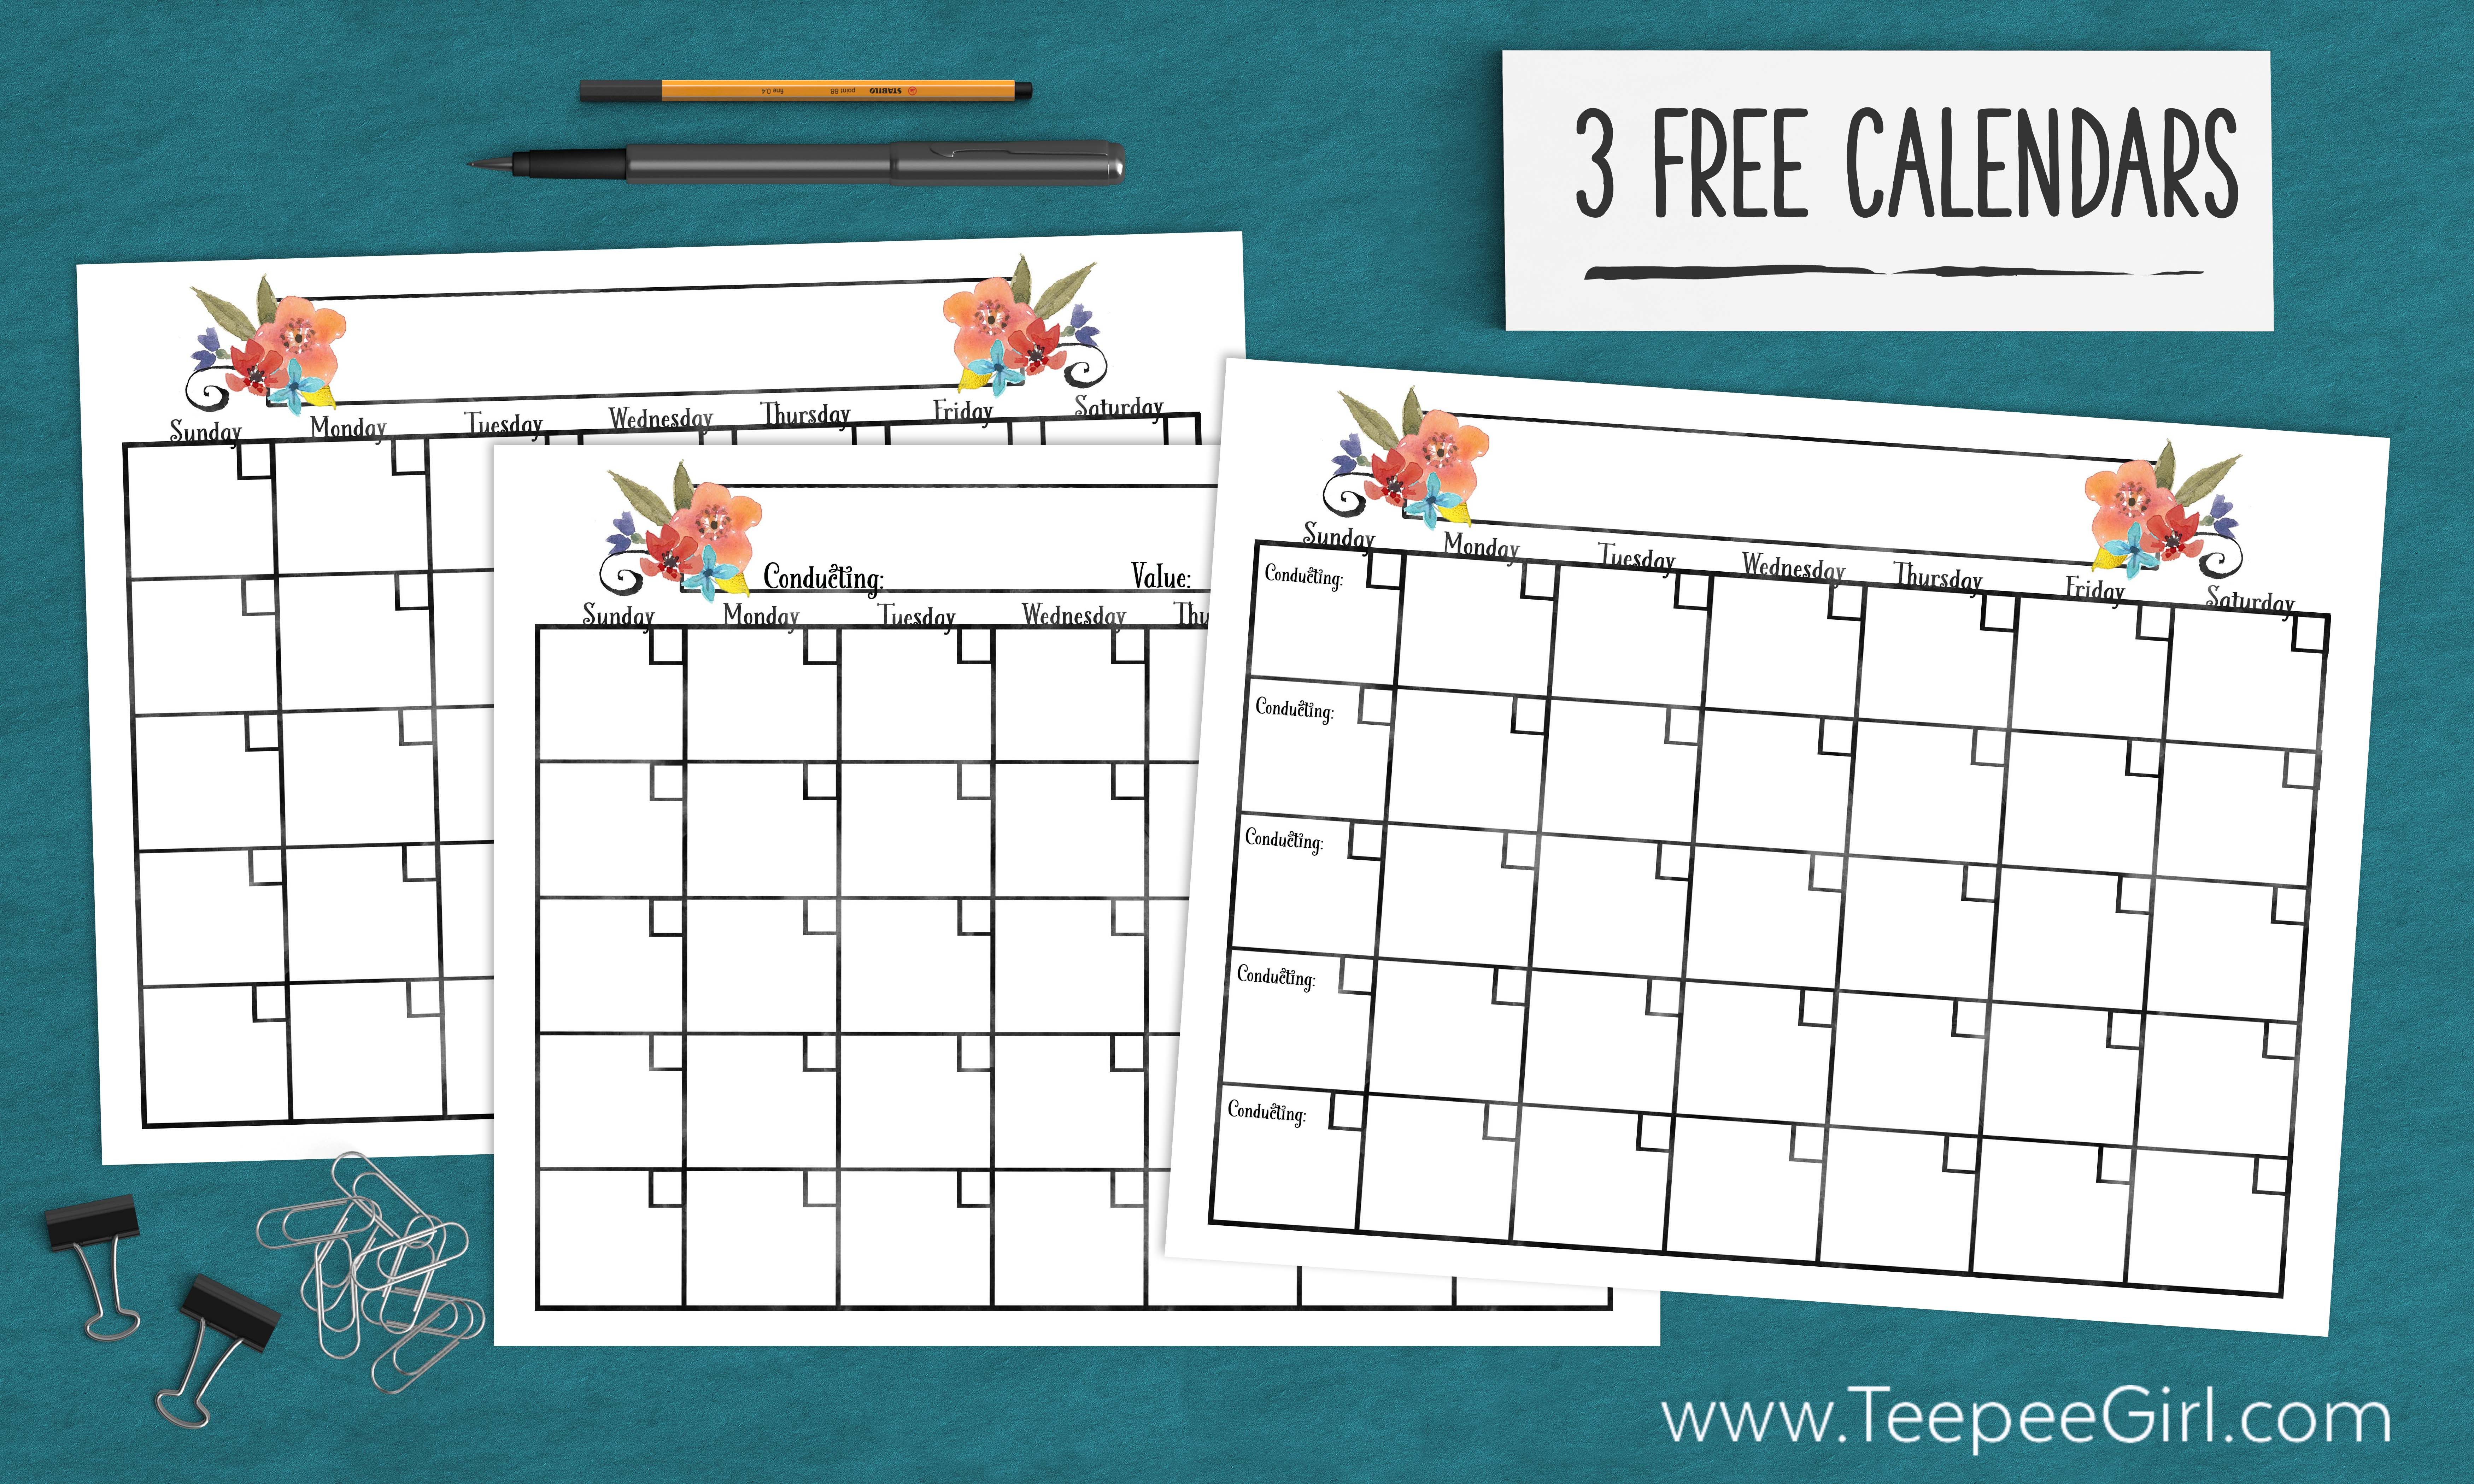 2017 Calendars for Young Women